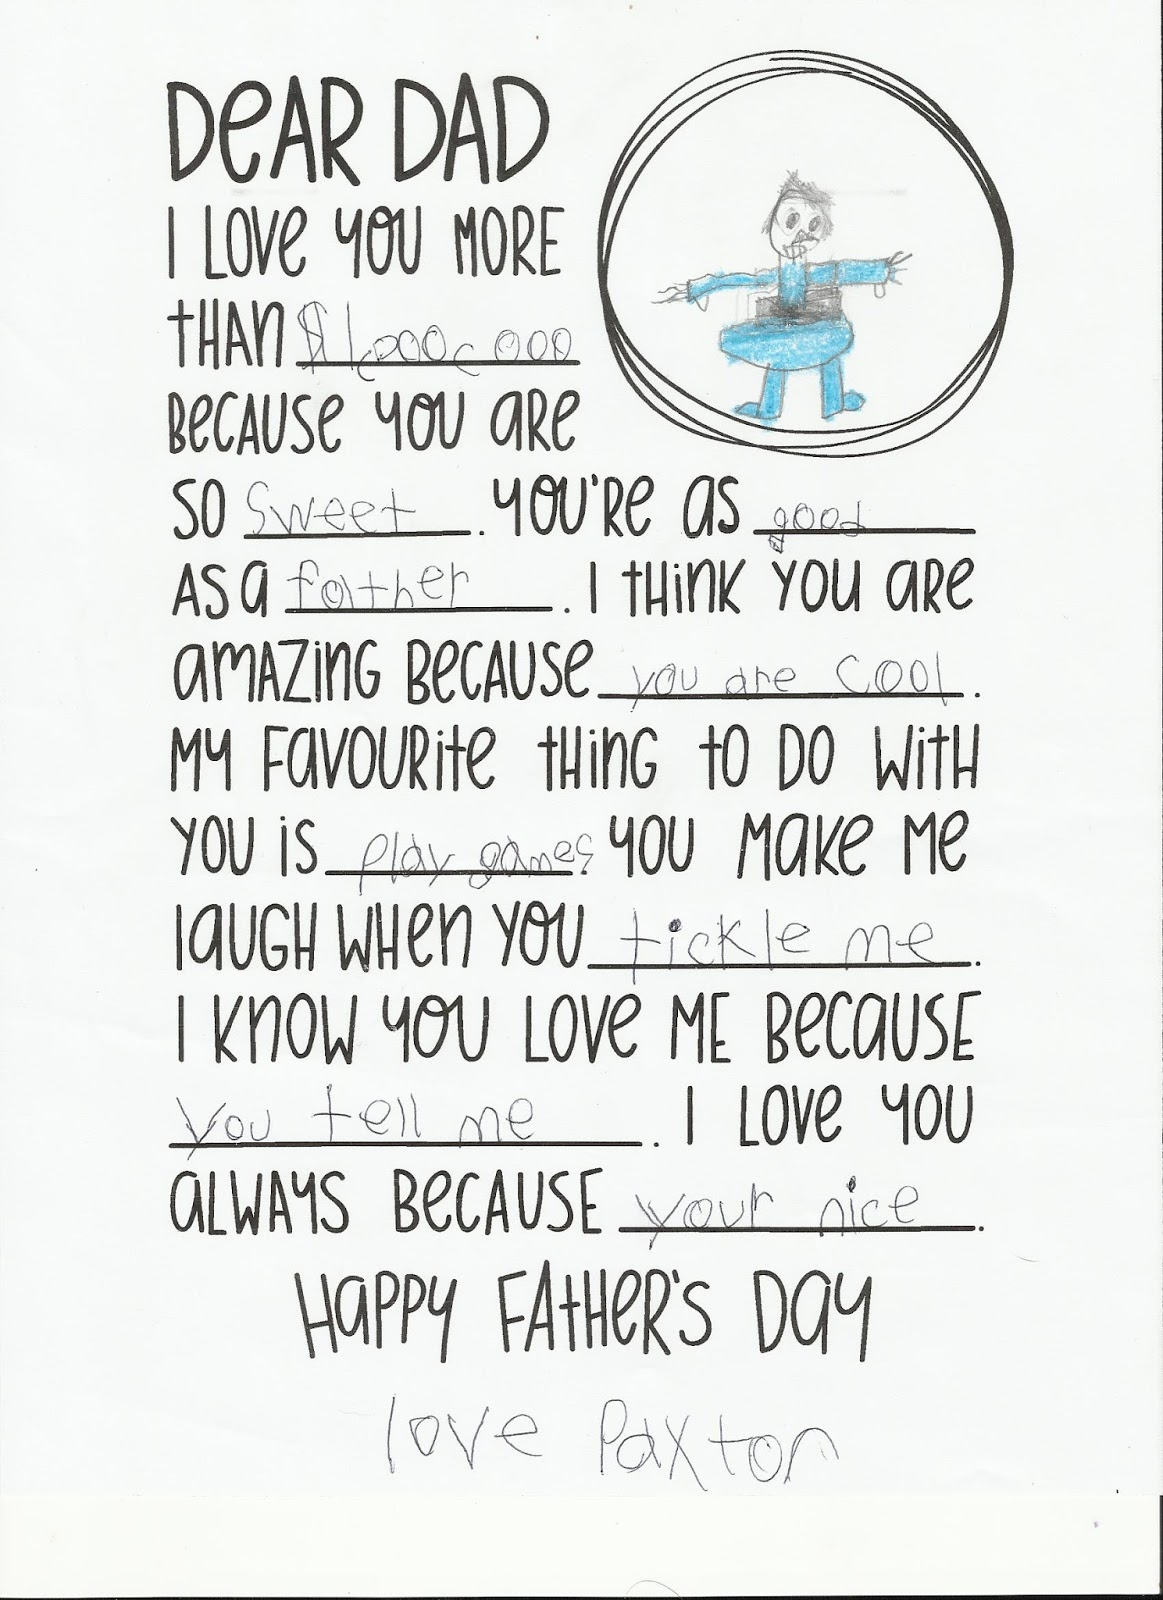 Mander Rocha: Fathers Day Letter From Child